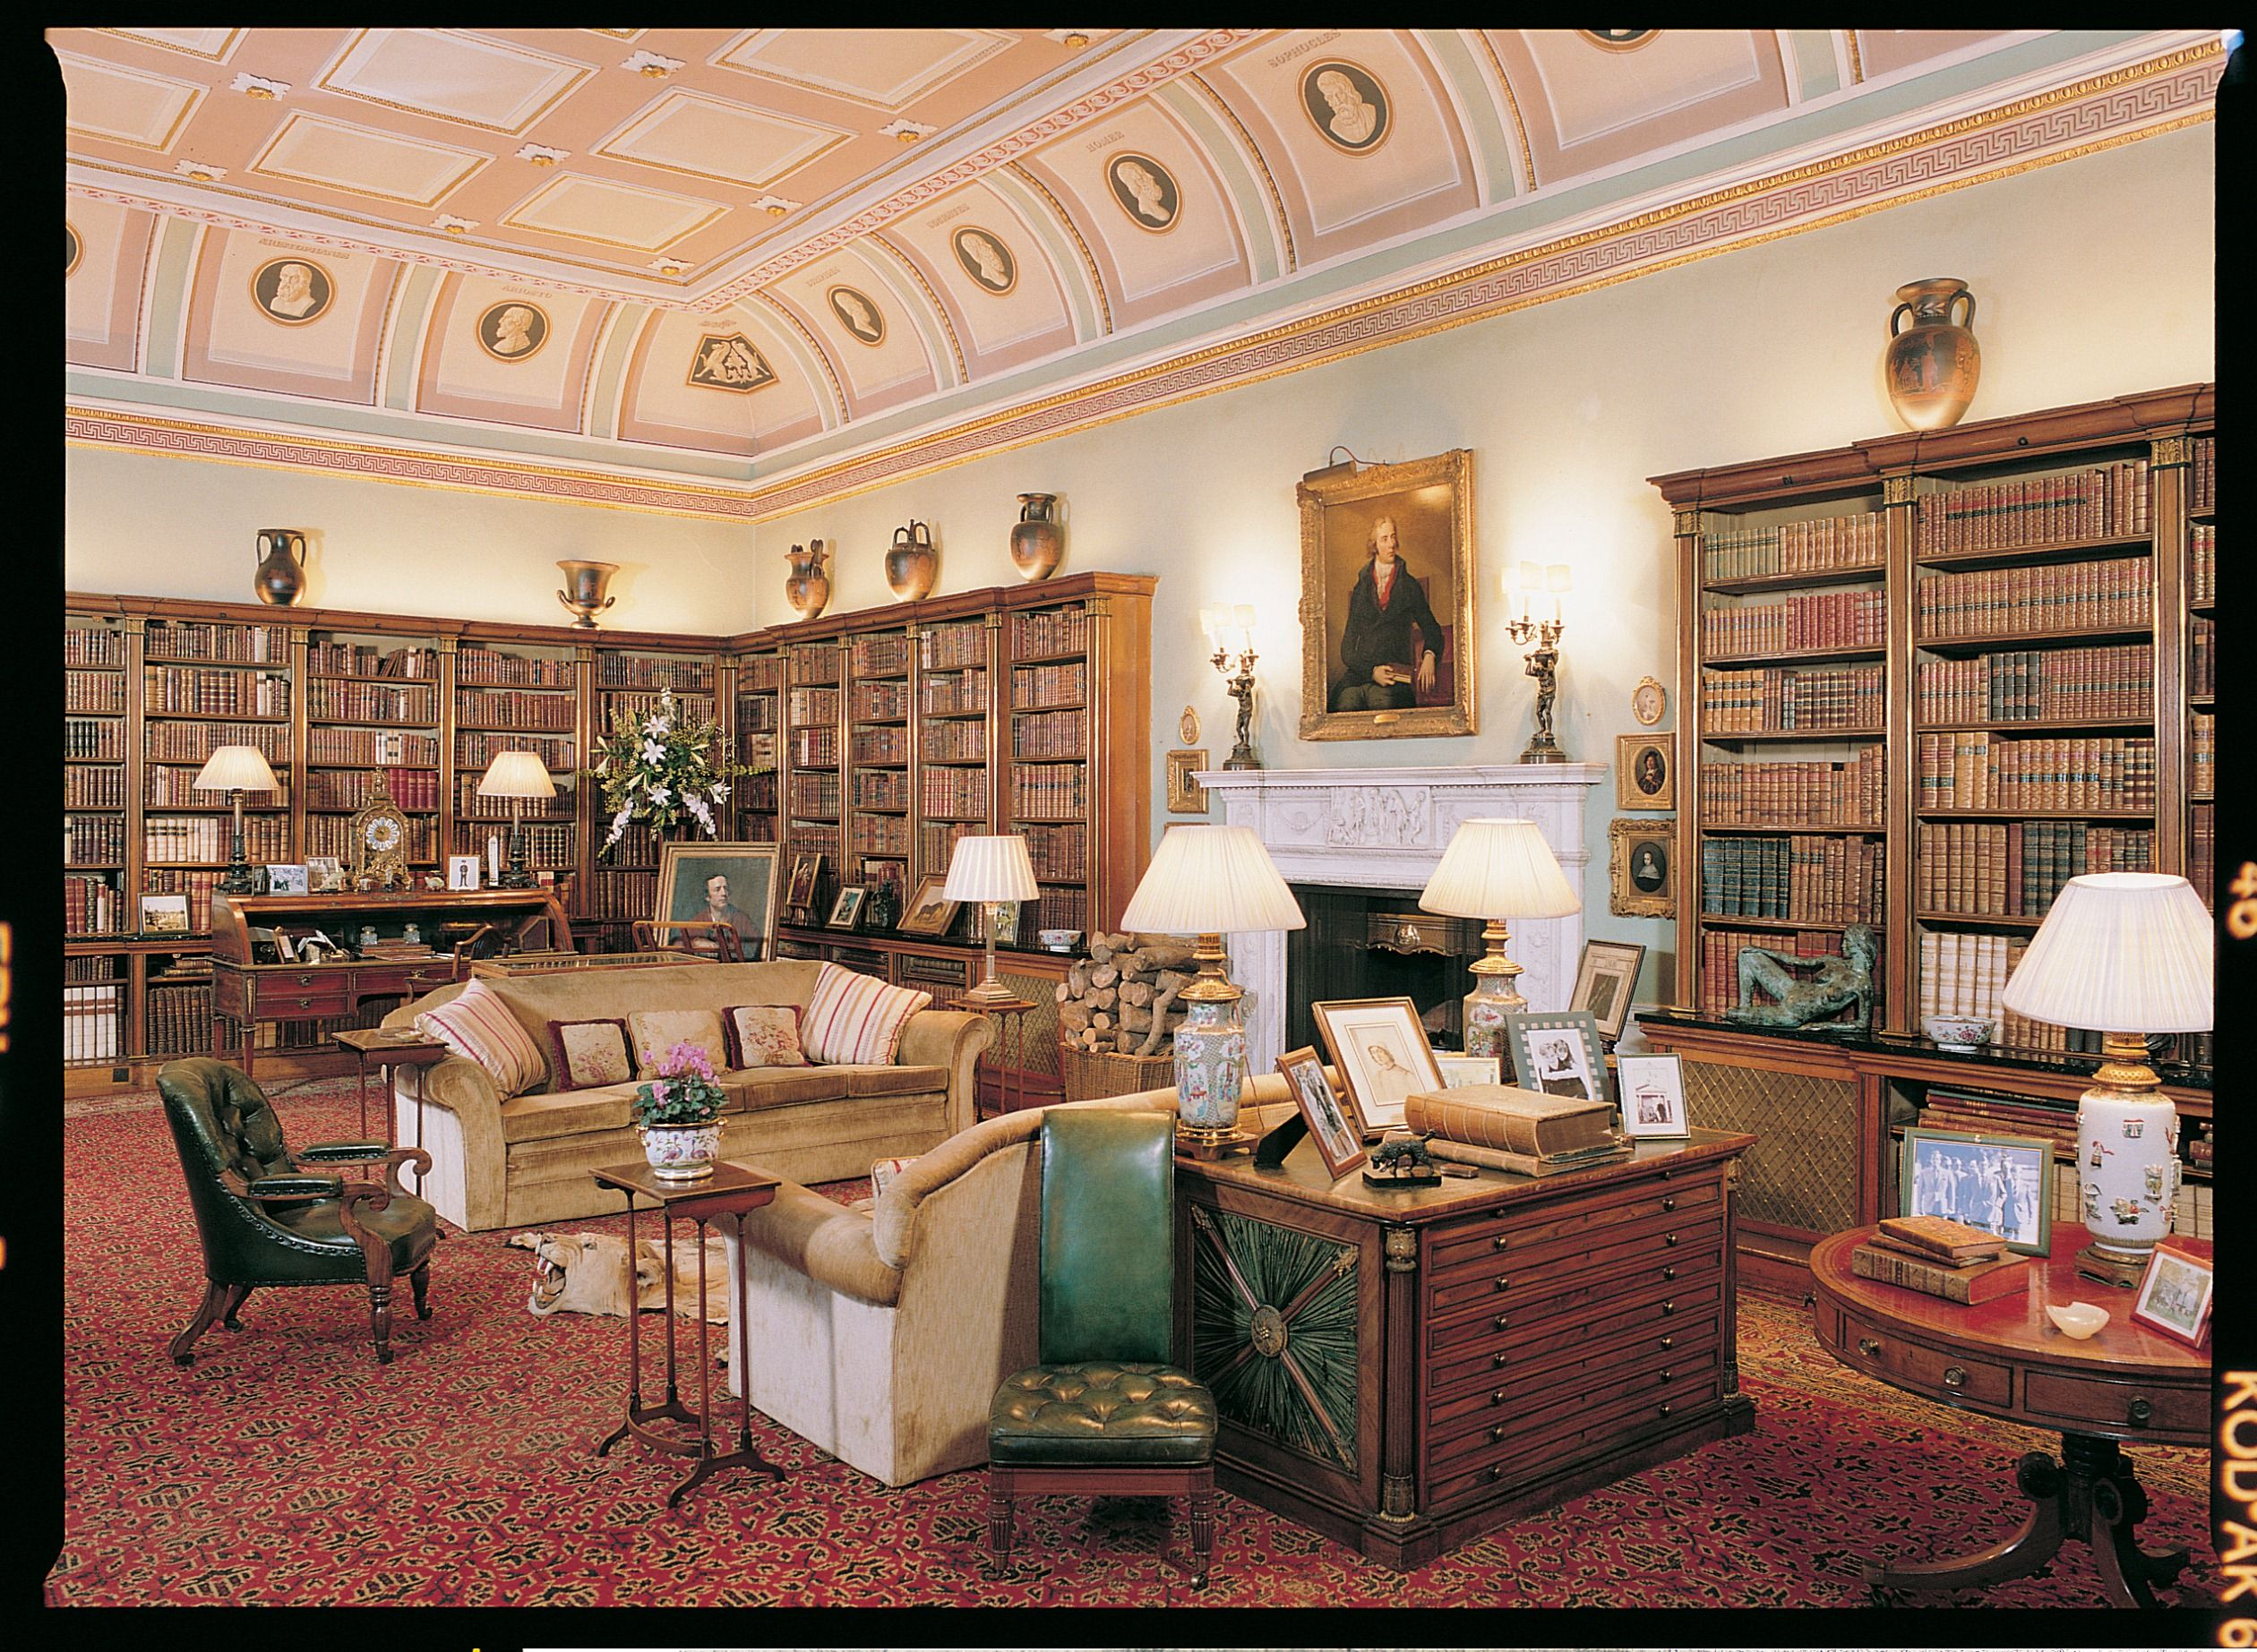 Library at Bowood House - looking towards to the fireplace